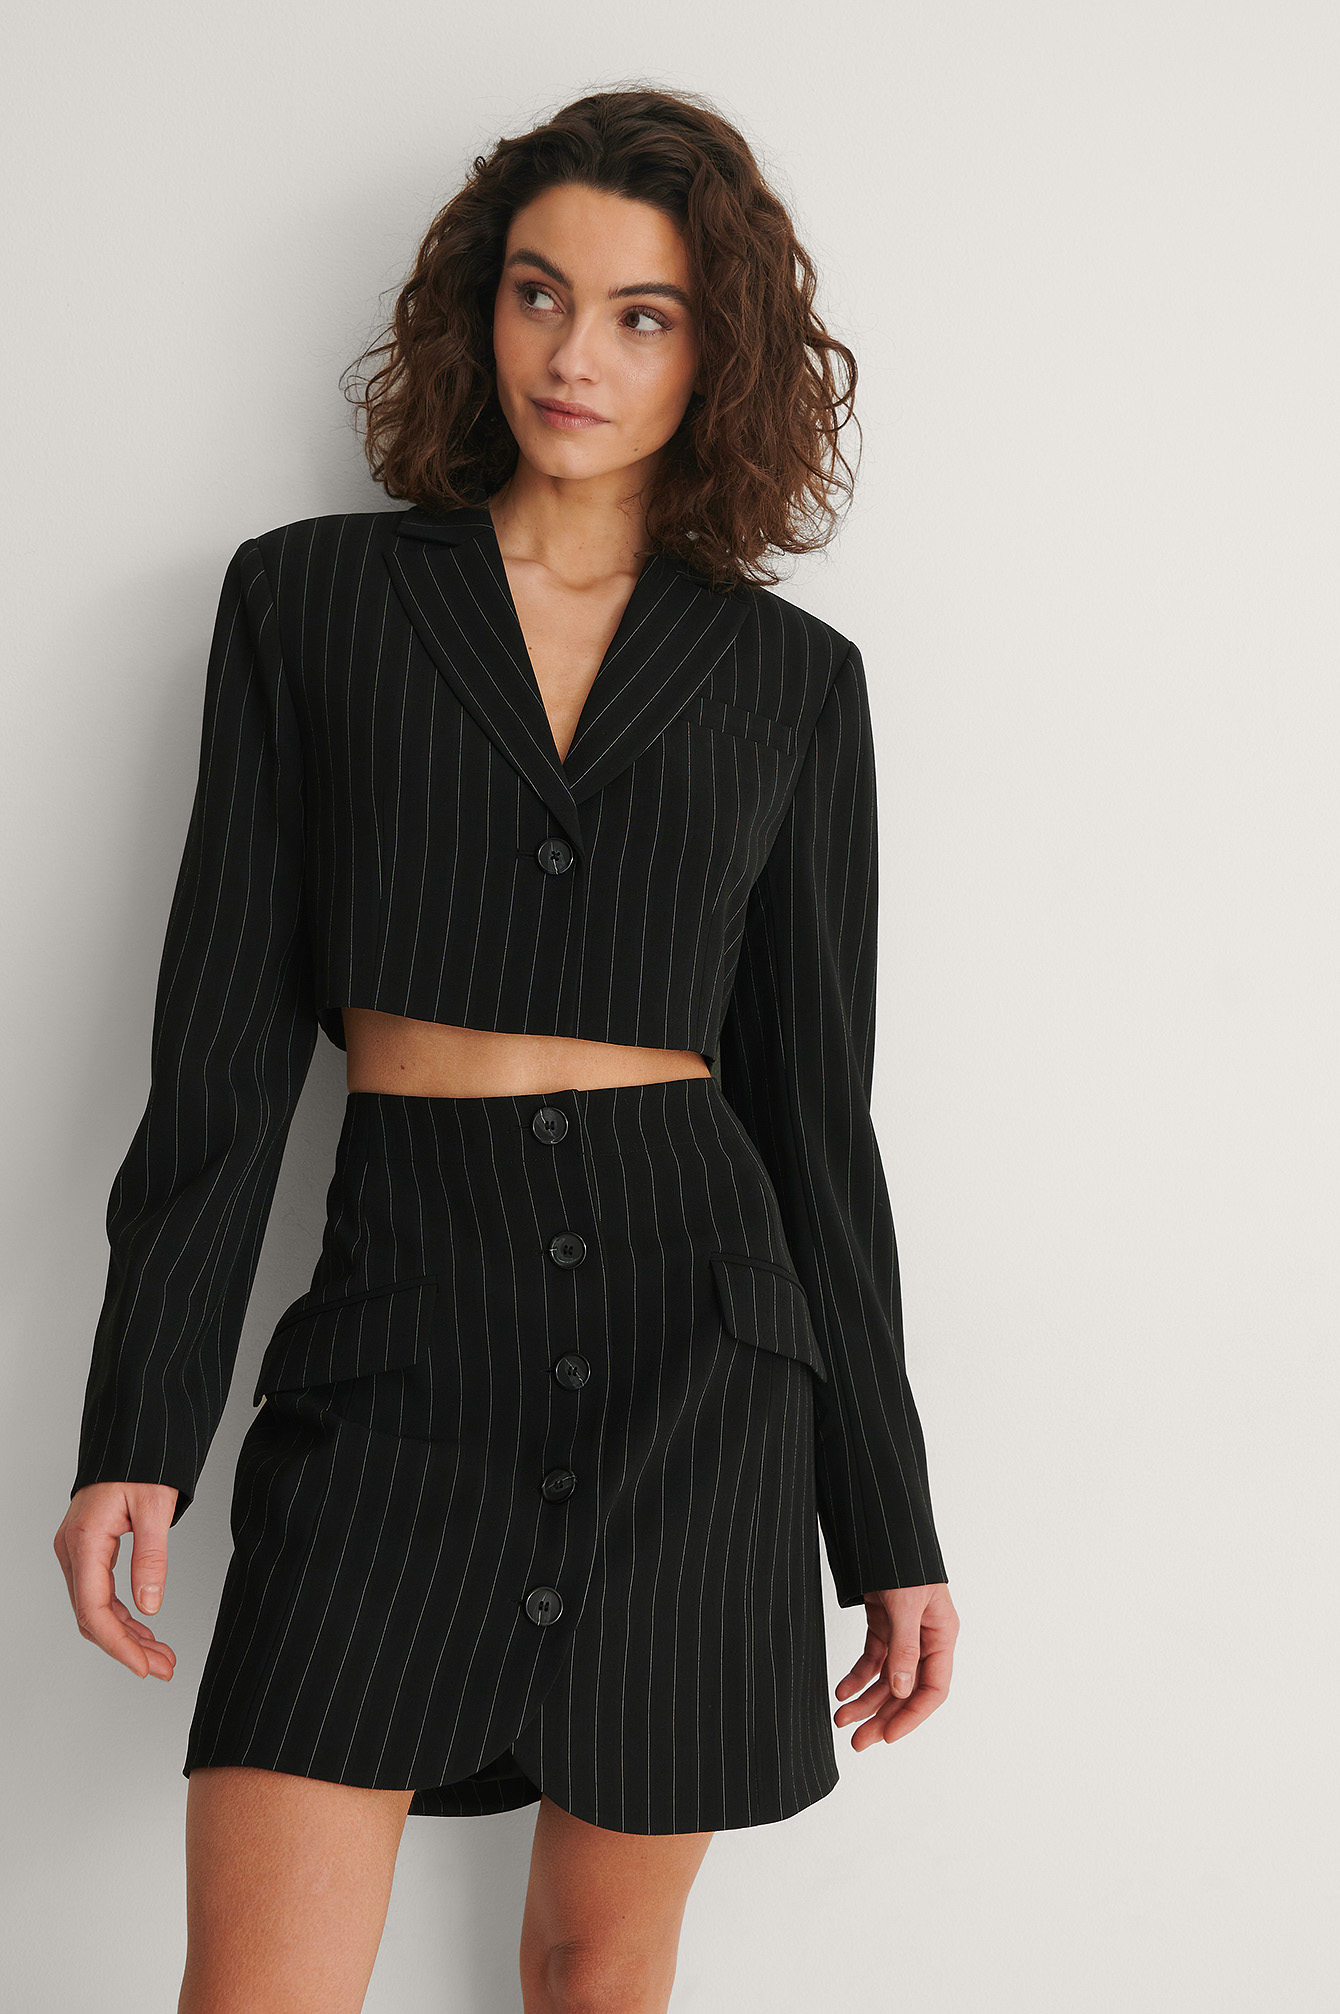 Stripe Print Cropped Pinstriped Blazer